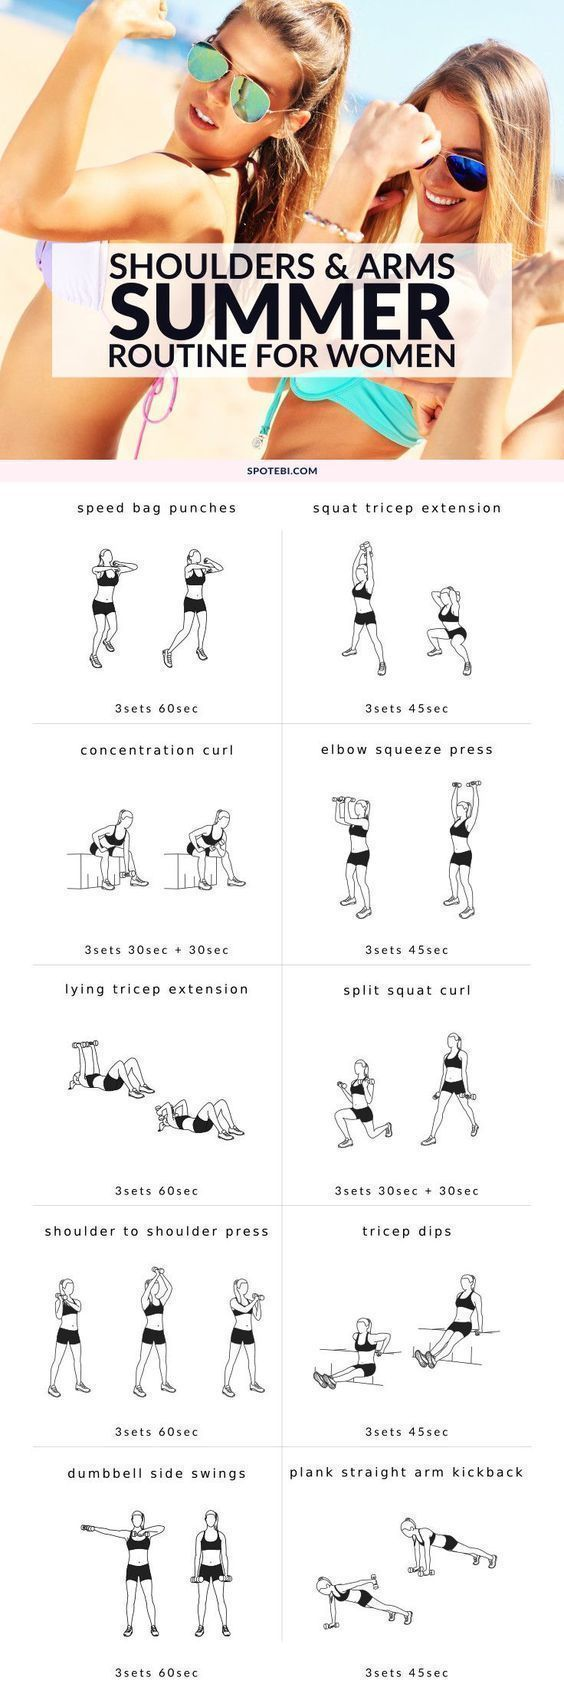 shoulders and arms summer routine for women strength training